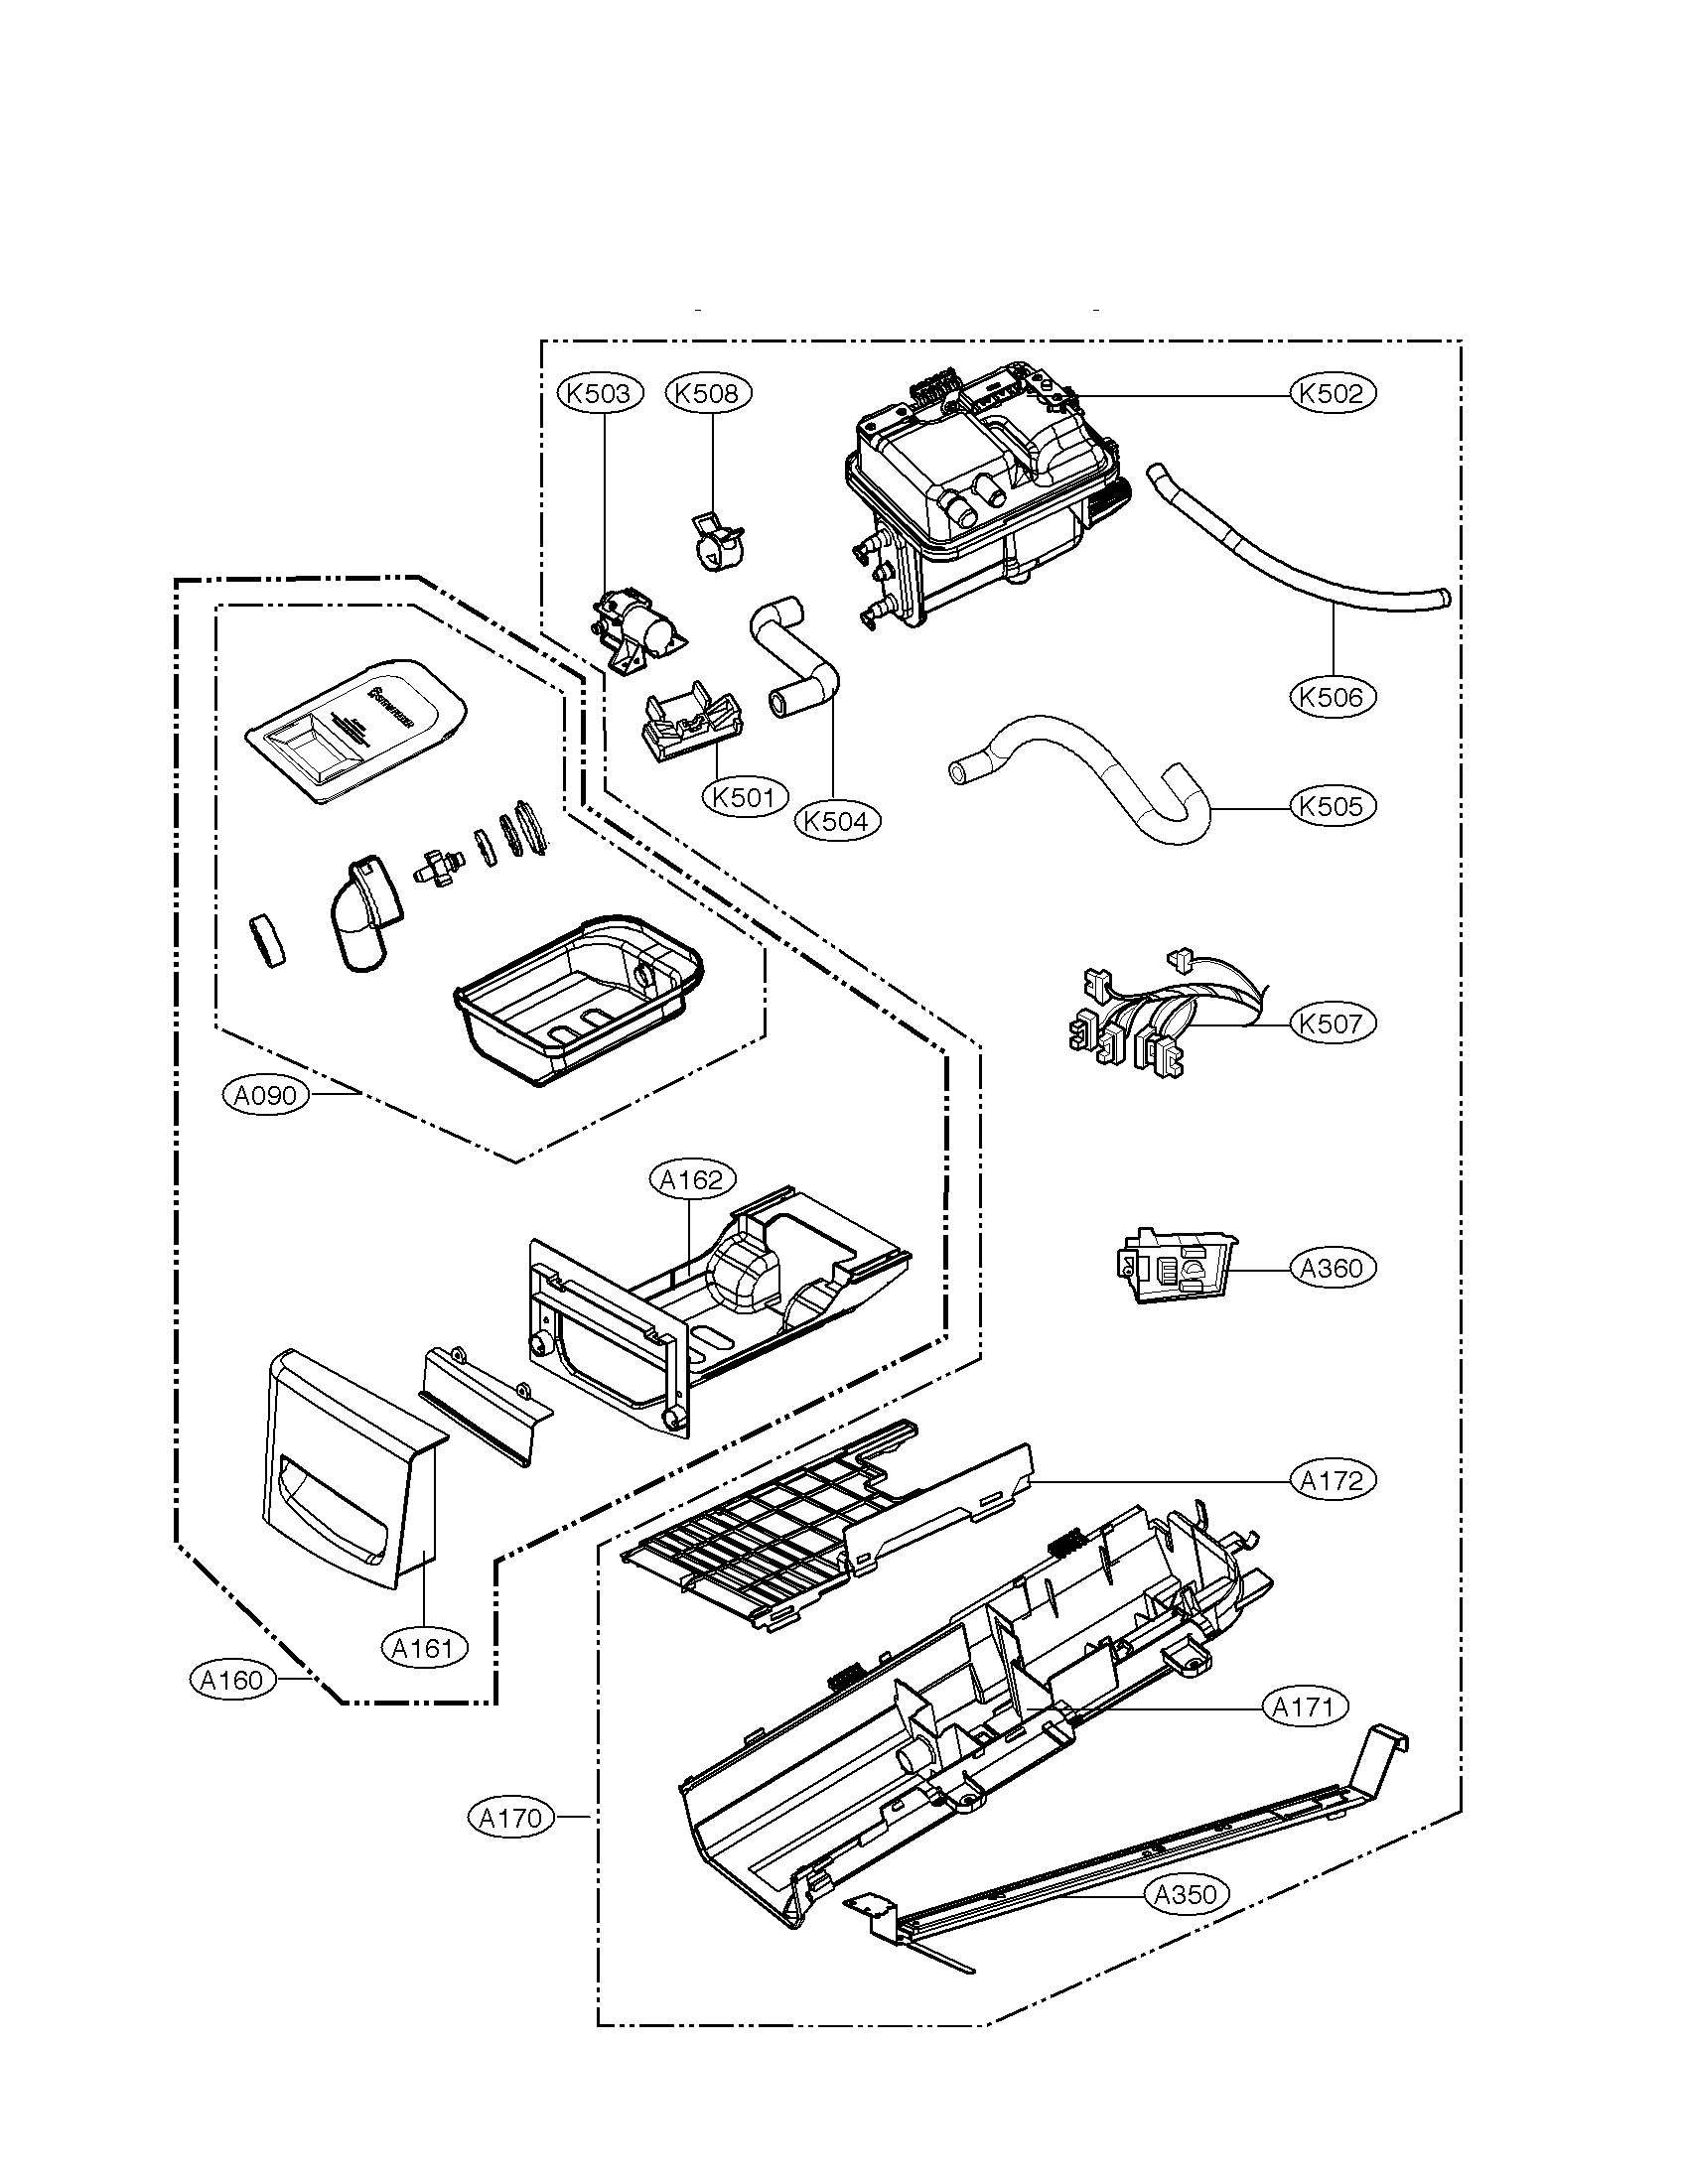 PANEL AND GUIDE ASSEMBLY PARTS Diagram & Parts List for